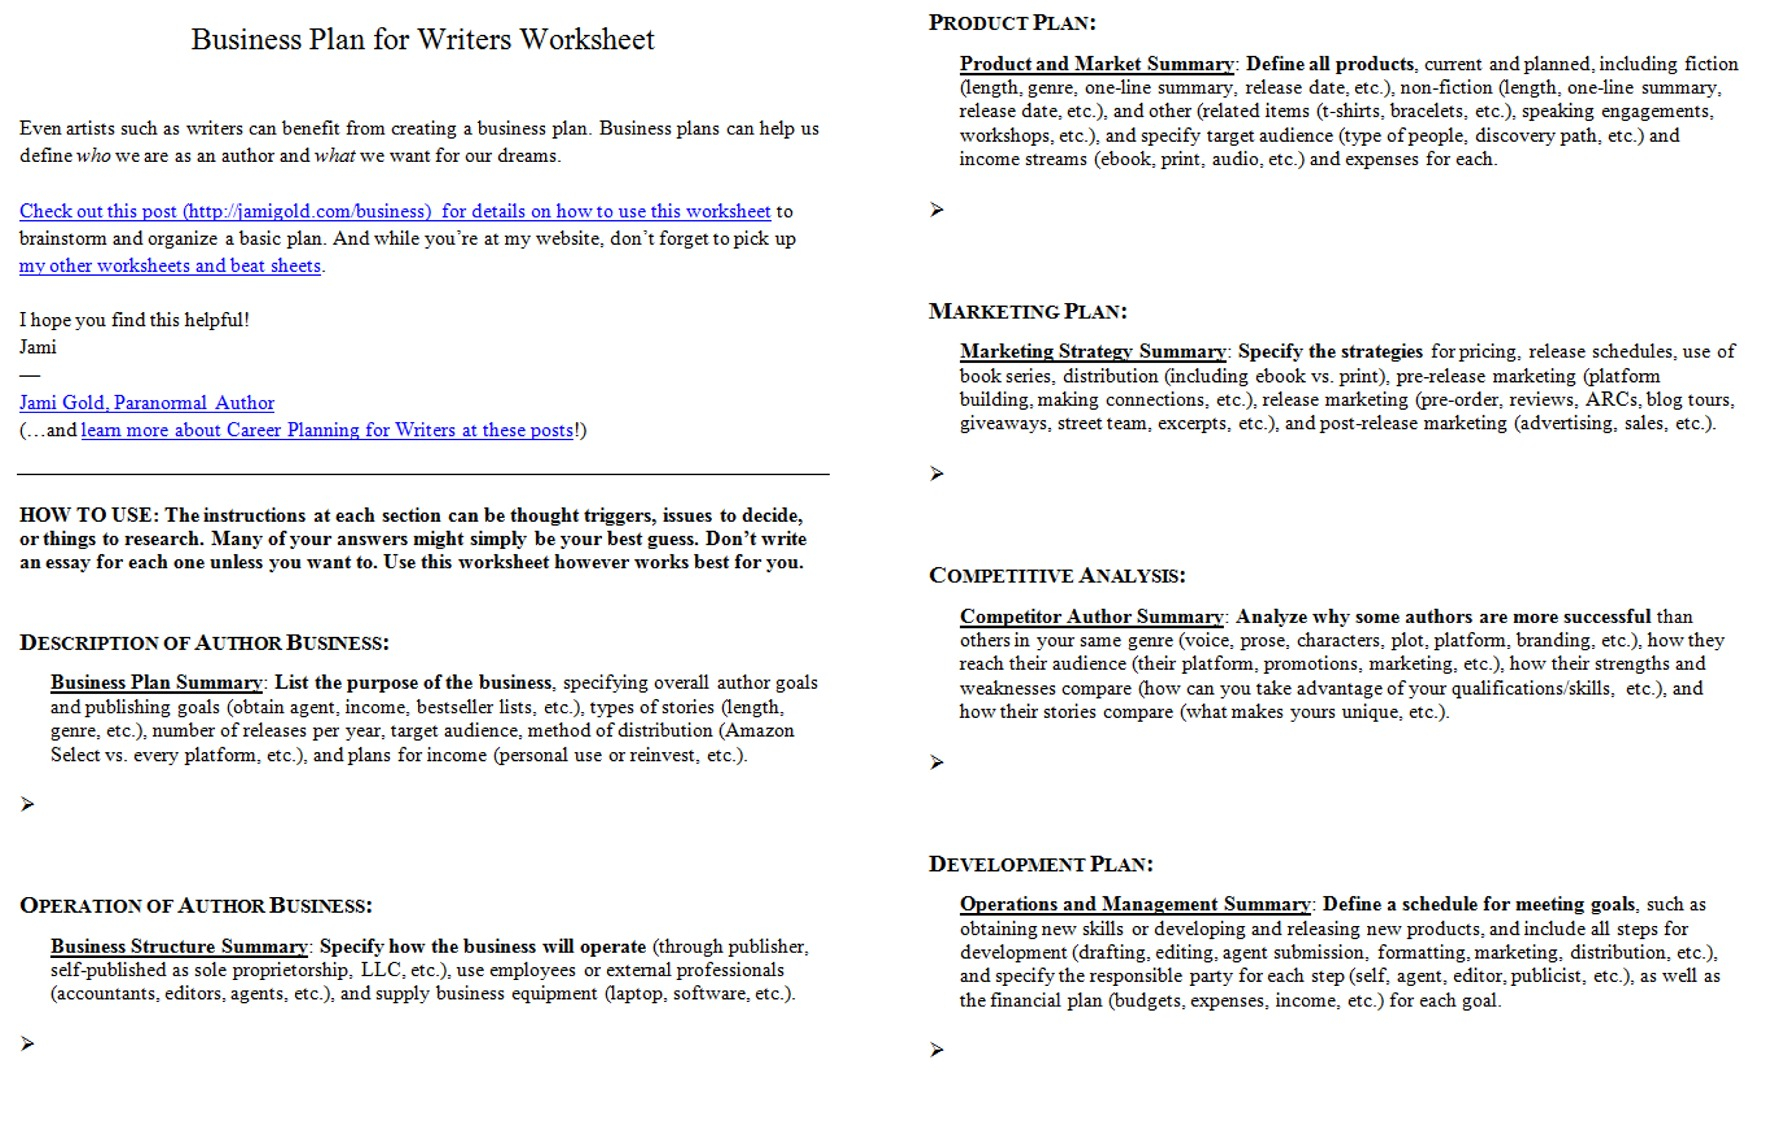 Weirdmailus  Unique Worksheets For Writers  Jami Gold Paranormal Author With Foxy Screen Shot Of Both Pages Of The Business Plan For Writers Worksheet With Nice Their There They Re Worksheets Also Forces Worksheet In Addition Introduction To Acids And Bases Worksheet And Laws Of Exponents Worksheet Pdf As Well As Schedule D Worksheet Additionally Gattaca Worksheet From Jamigoldcom With Weirdmailus  Foxy Worksheets For Writers  Jami Gold Paranormal Author With Nice Screen Shot Of Both Pages Of The Business Plan For Writers Worksheet And Unique Their There They Re Worksheets Also Forces Worksheet In Addition Introduction To Acids And Bases Worksheet From Jamigoldcom